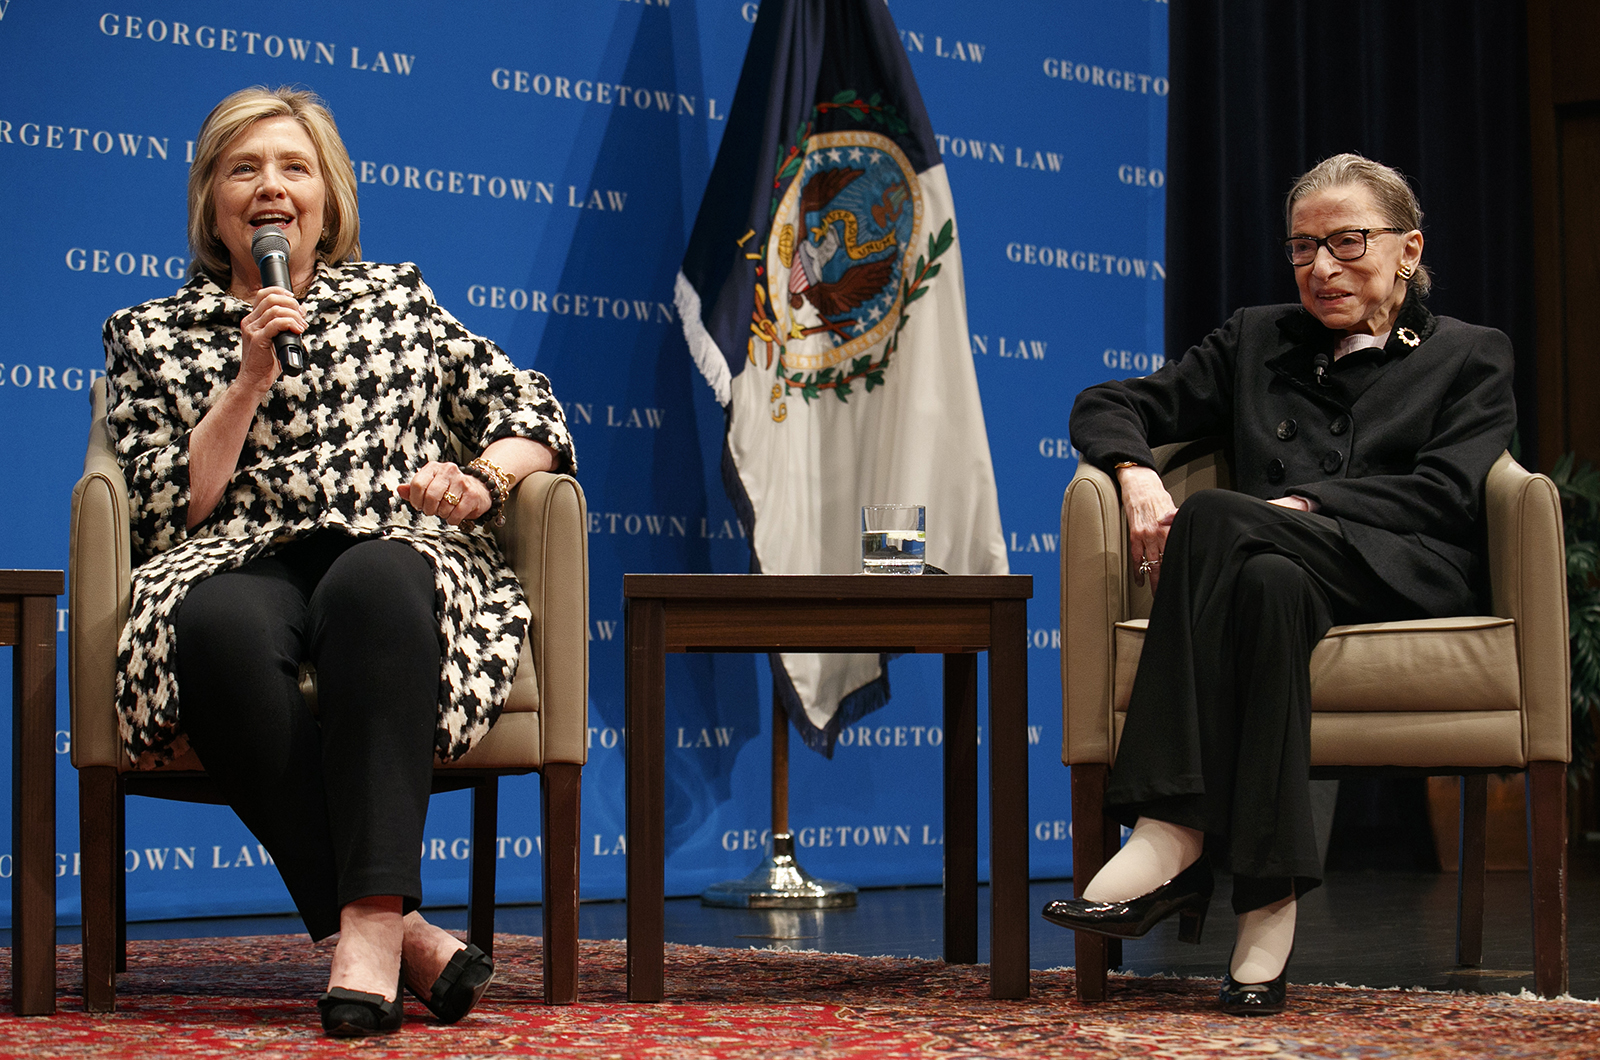 Supreme Court Justice Ruth Bader Ginsburg, right, listens as former Secretary of State Hillary Clinton speaks on Wednesday, October 30, 2019, in Washington.